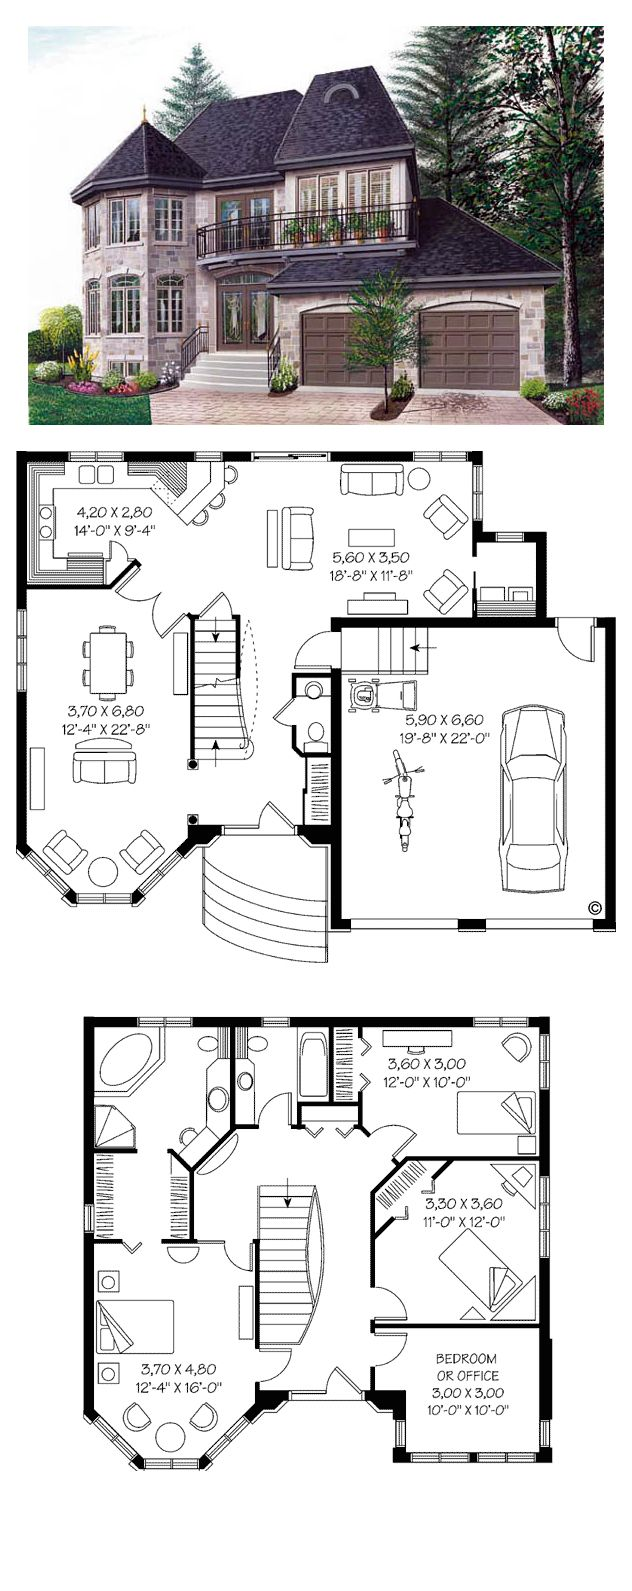 Best 25 sims house ideas on pinterest sims house plans for Family house plans